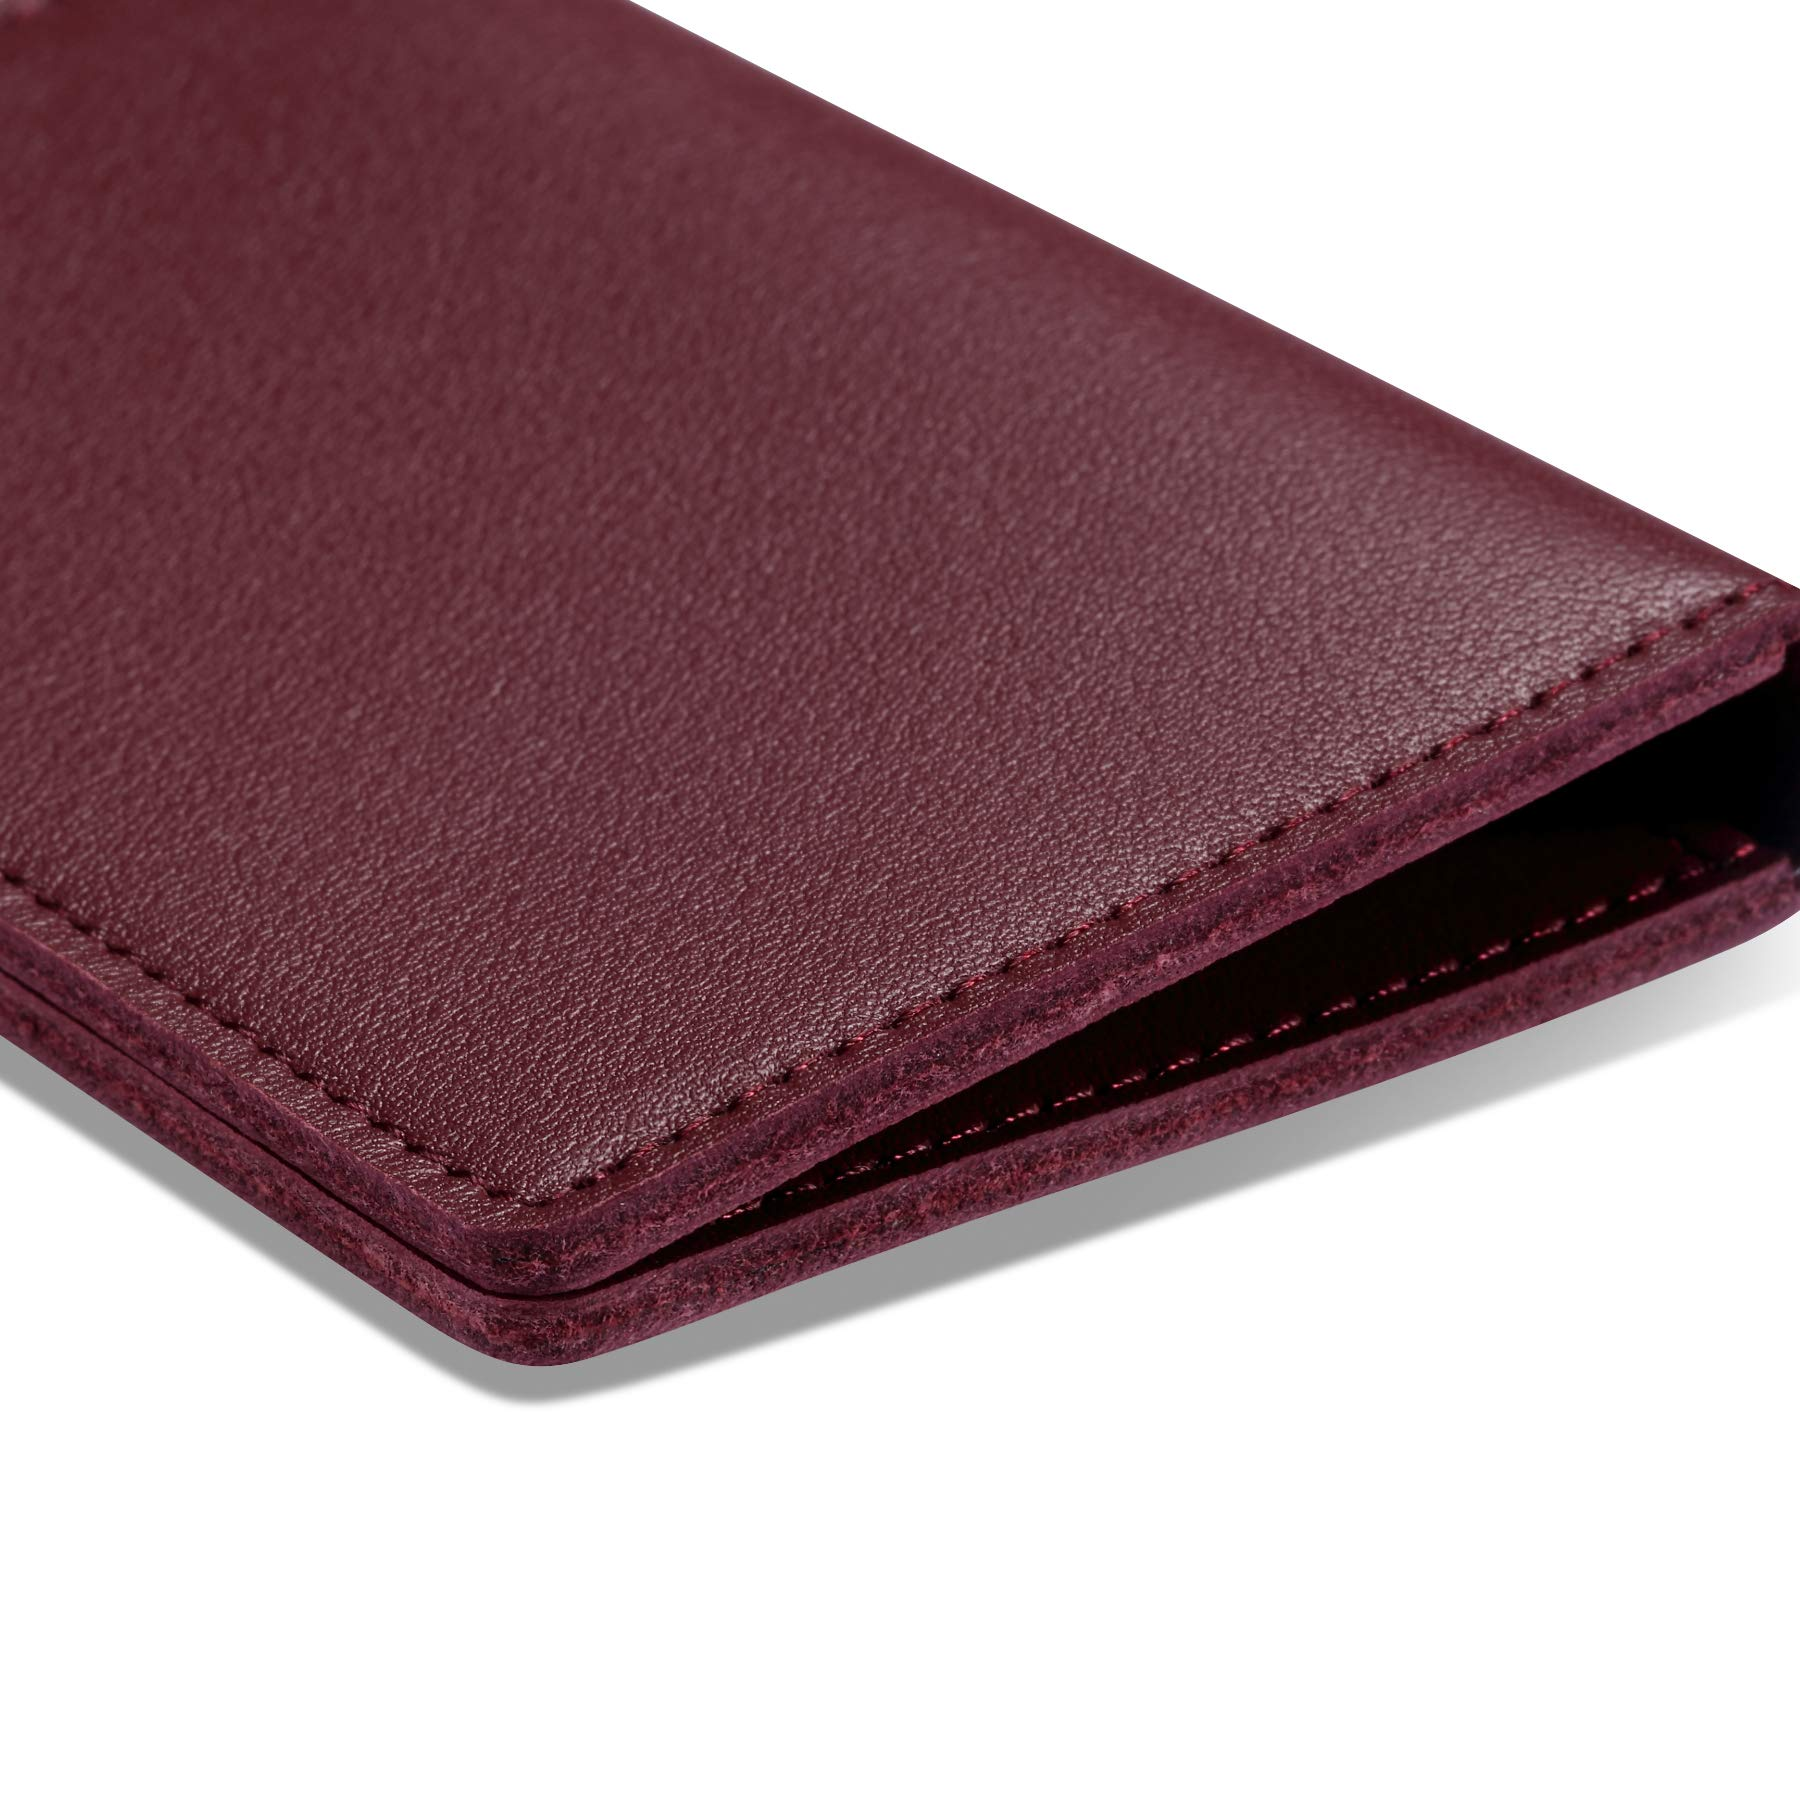 HISCOW Minimalist Thin Bifold Card Holder - Italian Calfskin (Bordeaux) by HISCOW (Image #4)